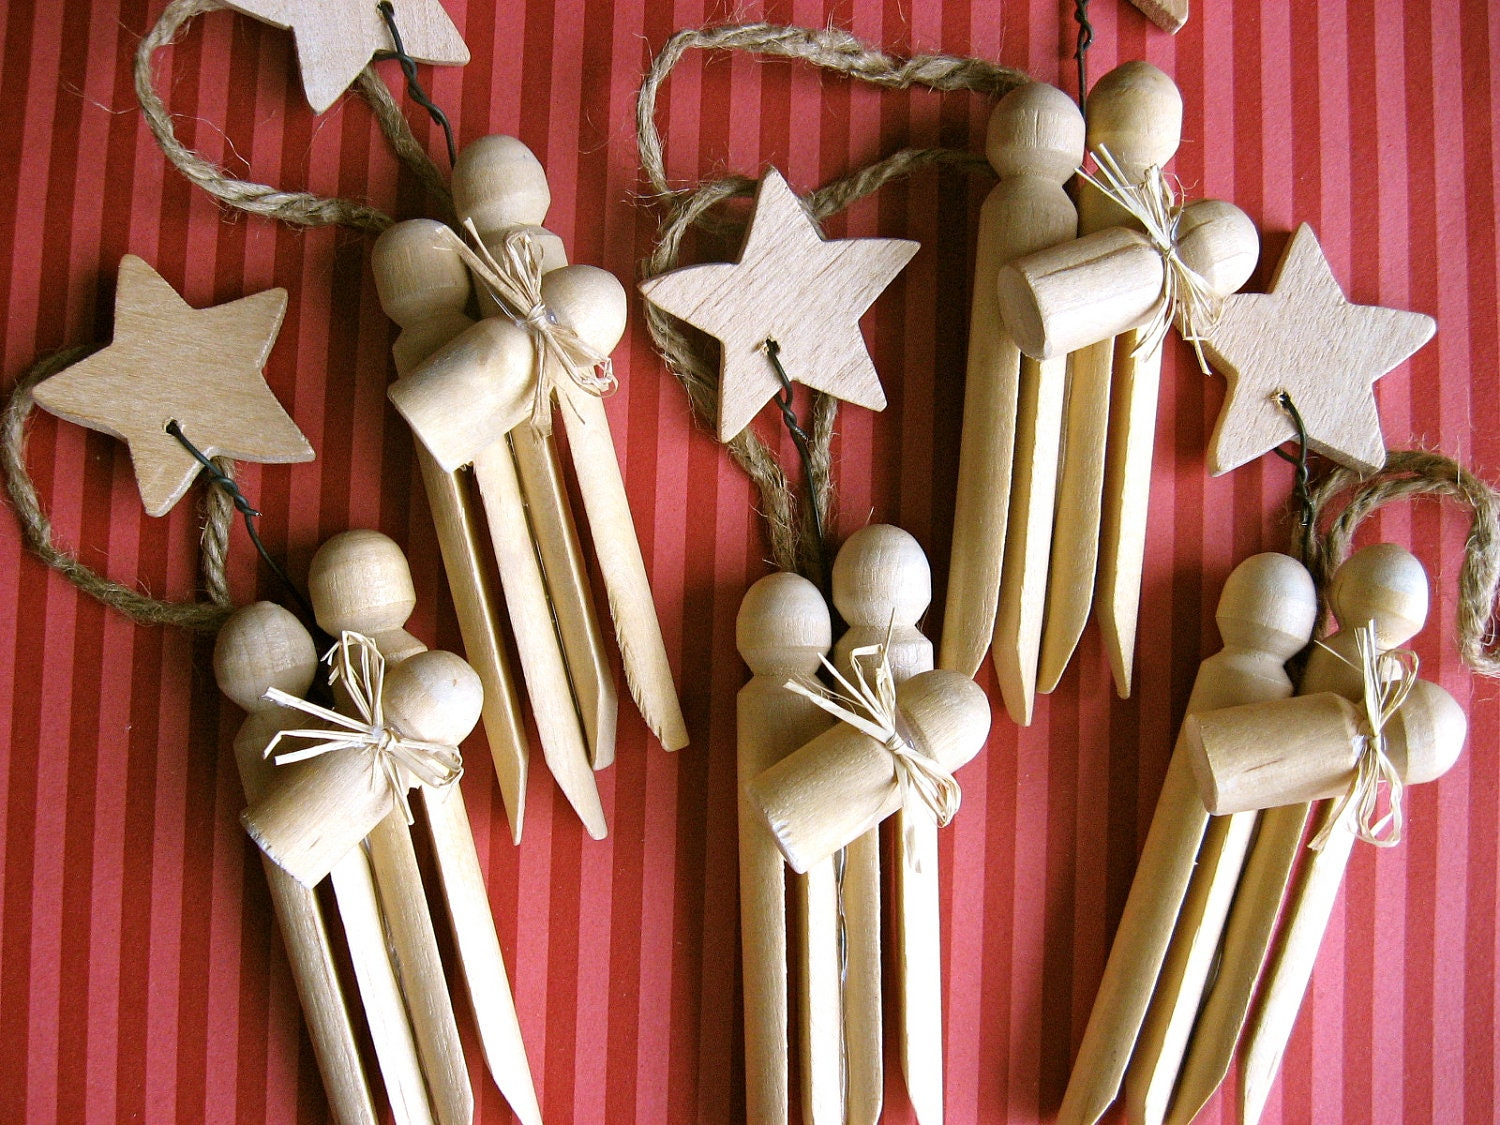 Set of 3 clothespin nativity ornaments for Christmas decorations to make at home with the kids